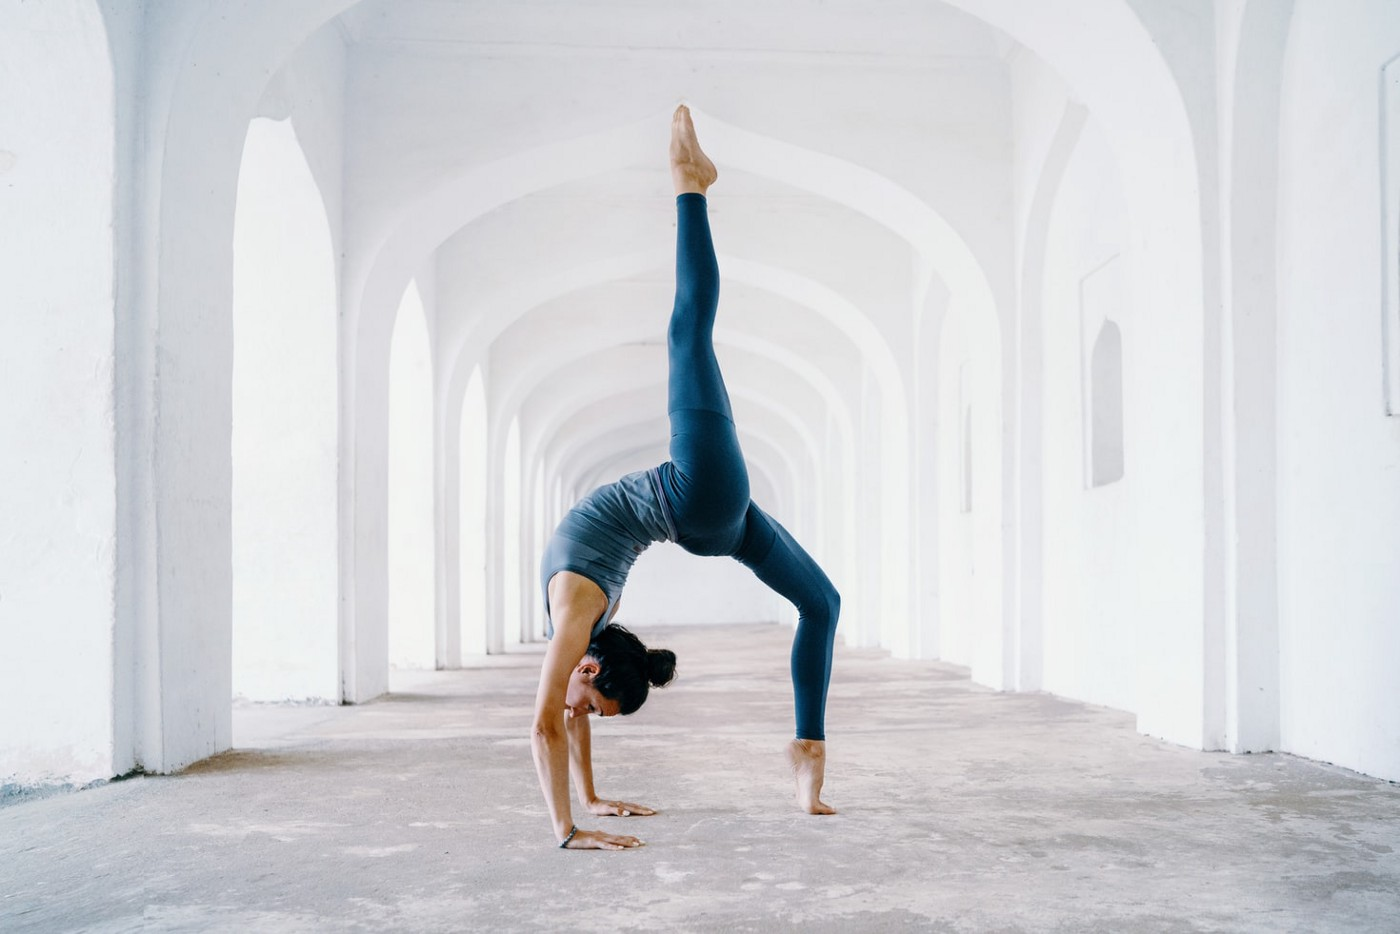 A woman does a challenging inverted yogi pose in a simple white hallway outdoors. The sun shines through several doorway openings on the left.